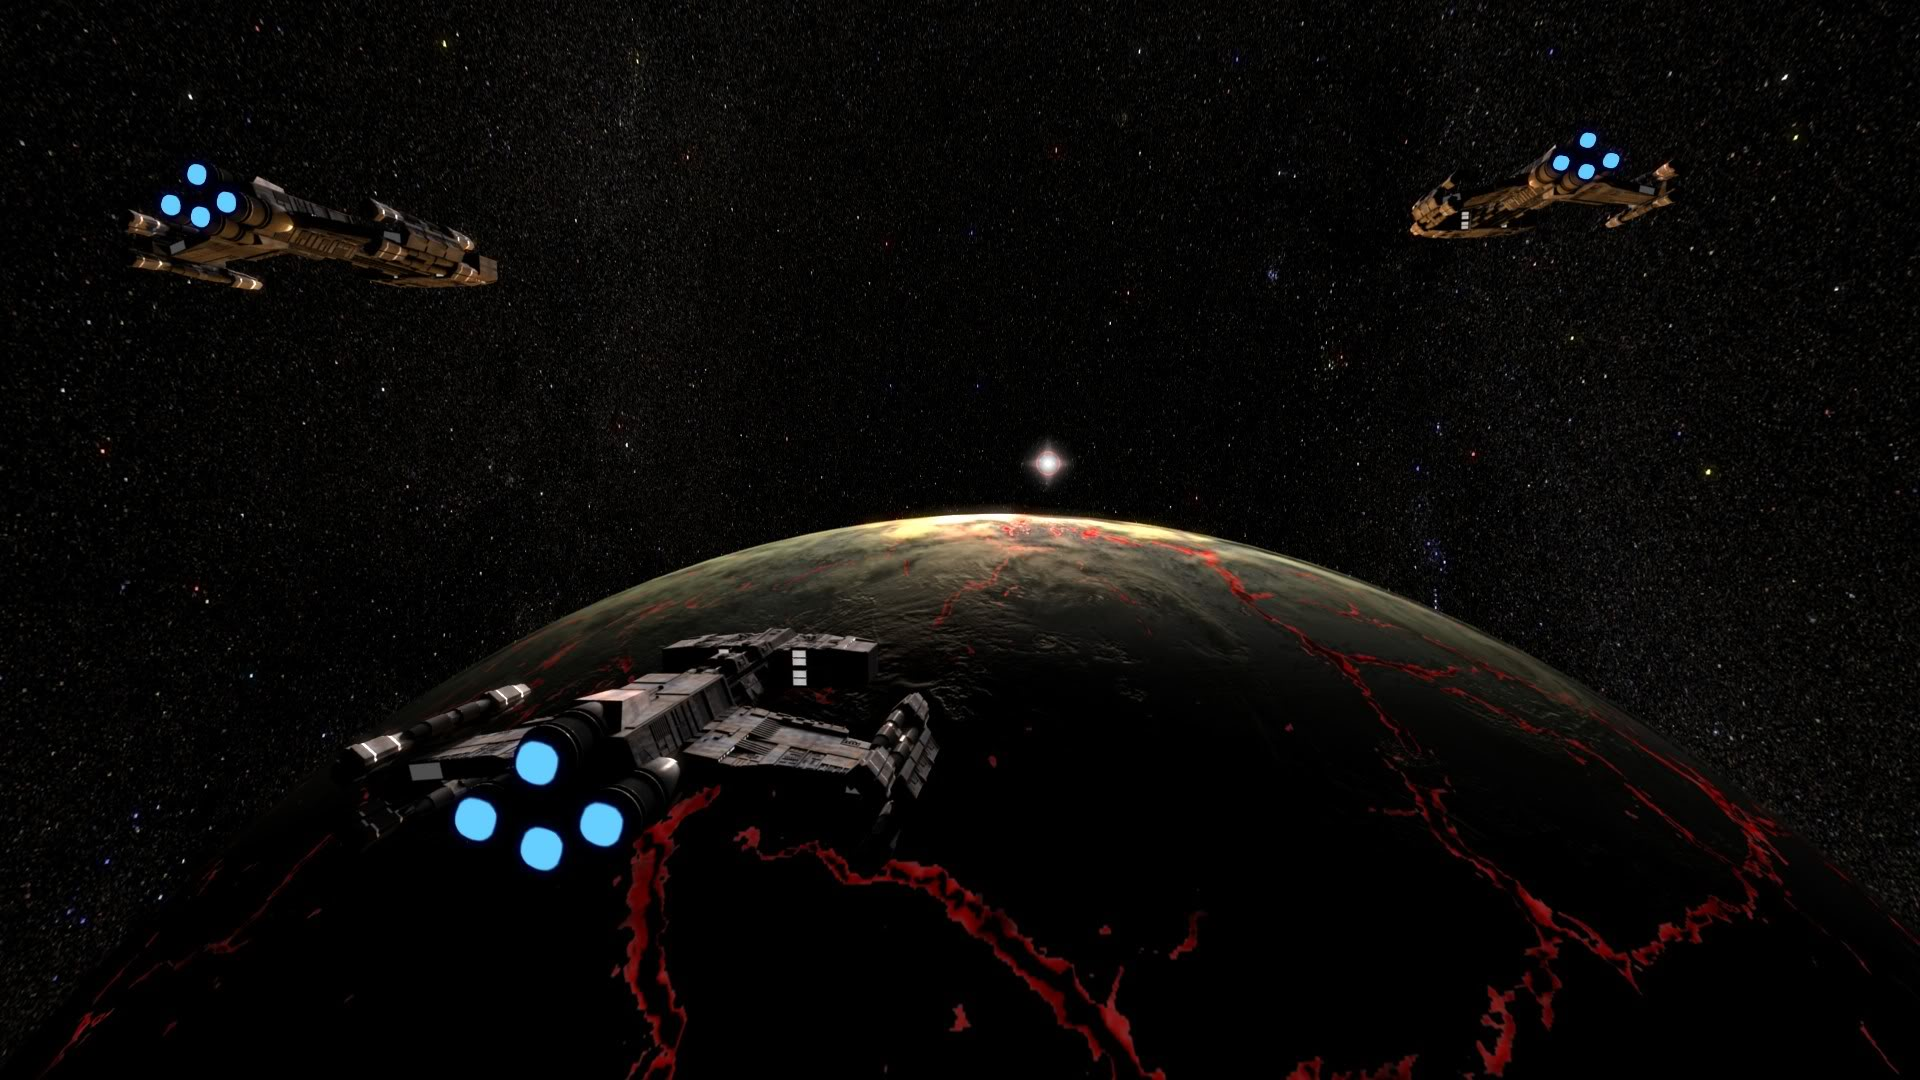 wallpapers authors ps3 space themes desktop backgrounds 1920x1080